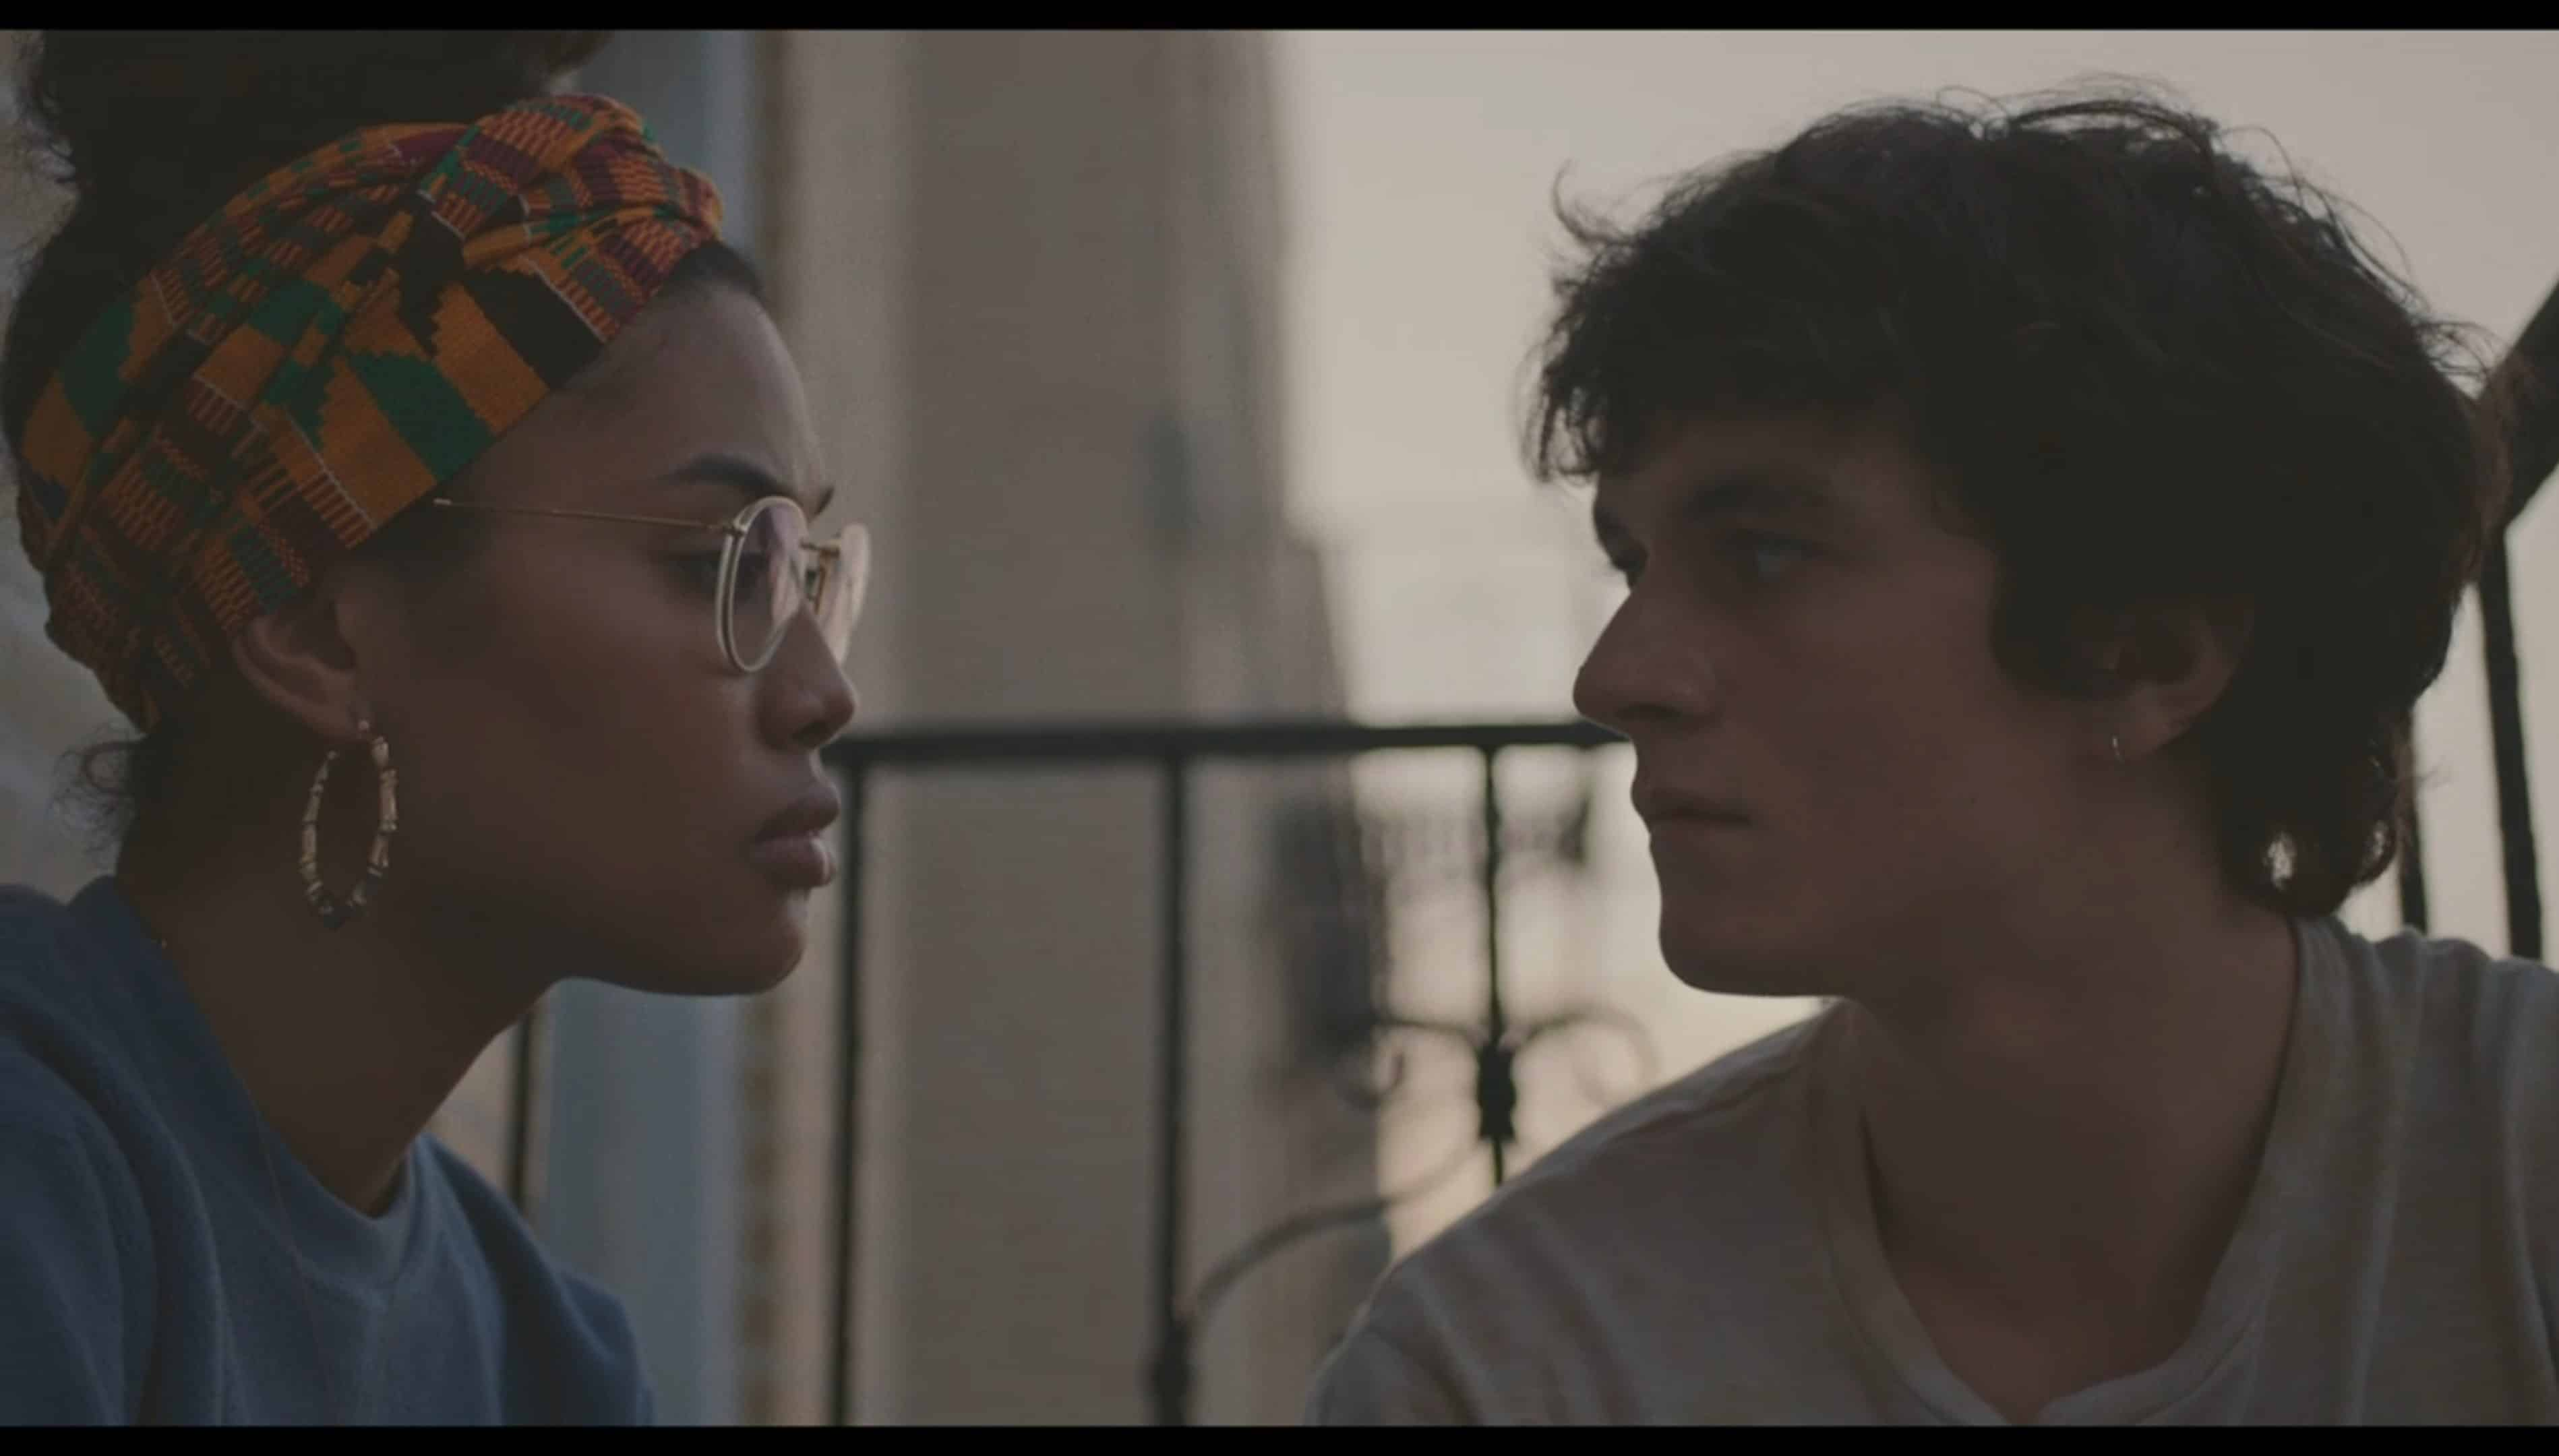 Wye (Leyna Bloom) and Paul (Fionn Whitehead) chilling outside her window